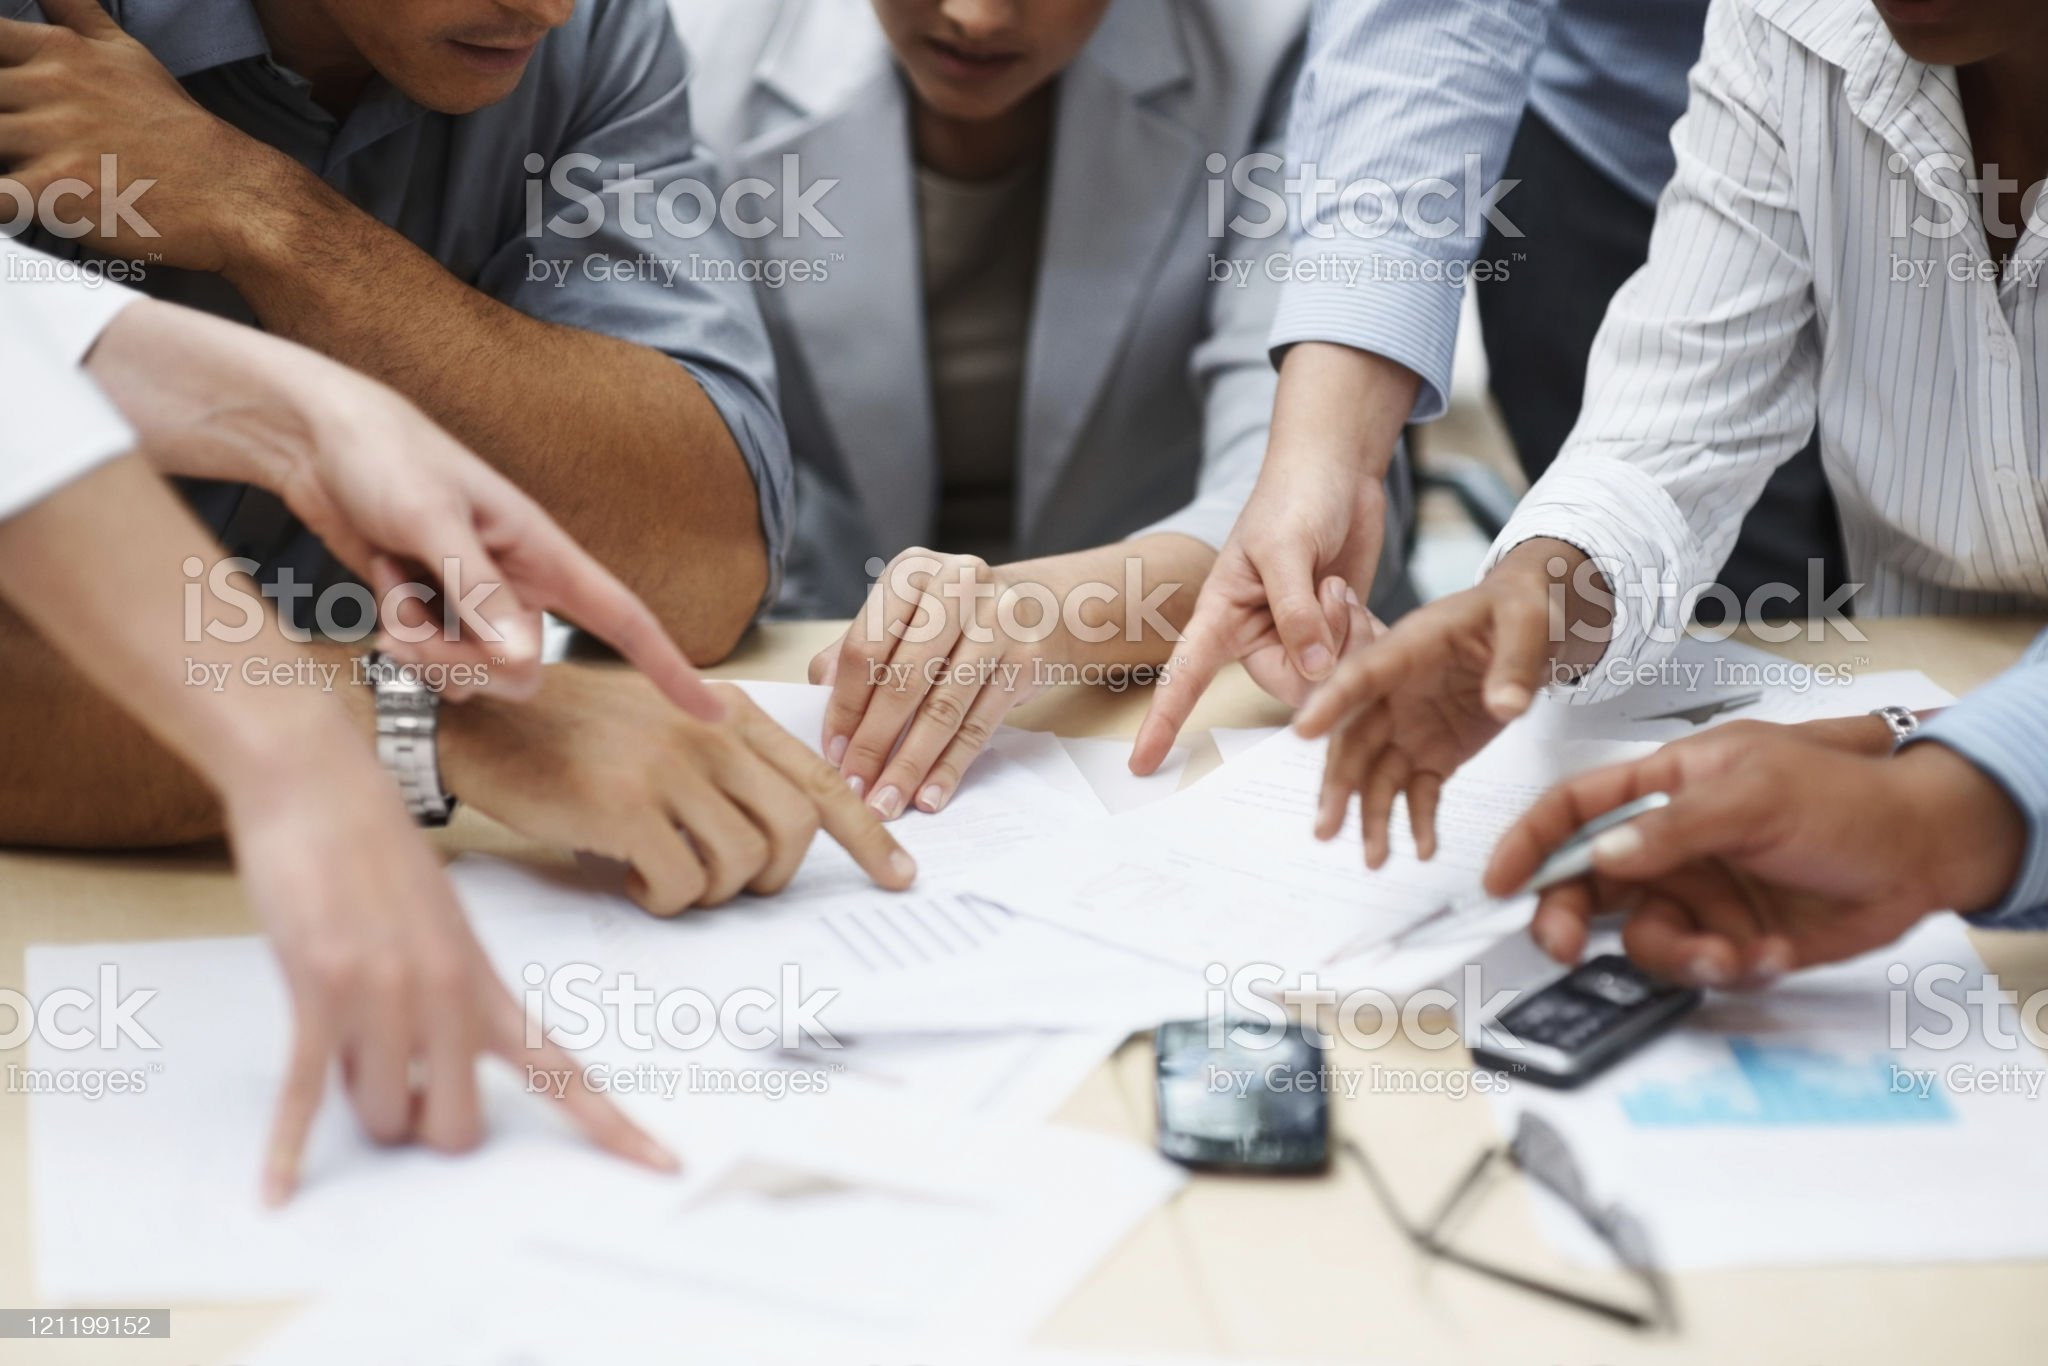 Teamwork - Business hands working with documents royalty-free stock photo